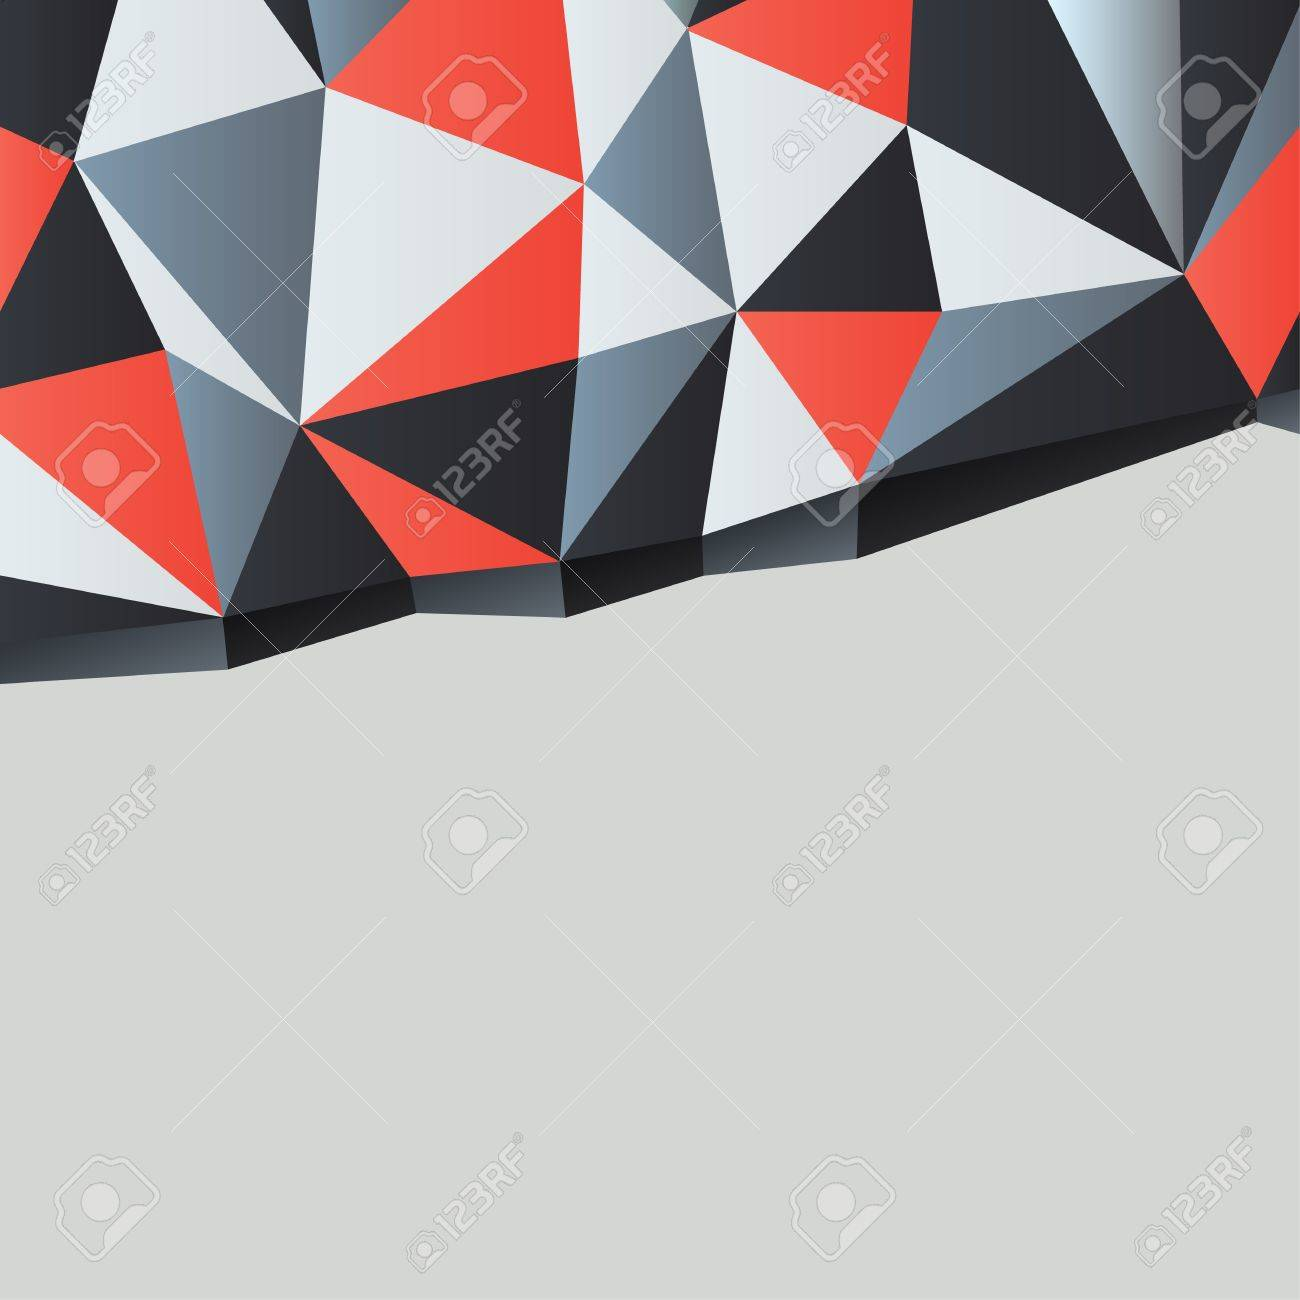 Triangles background with copyspace Stock Photo - 14707148